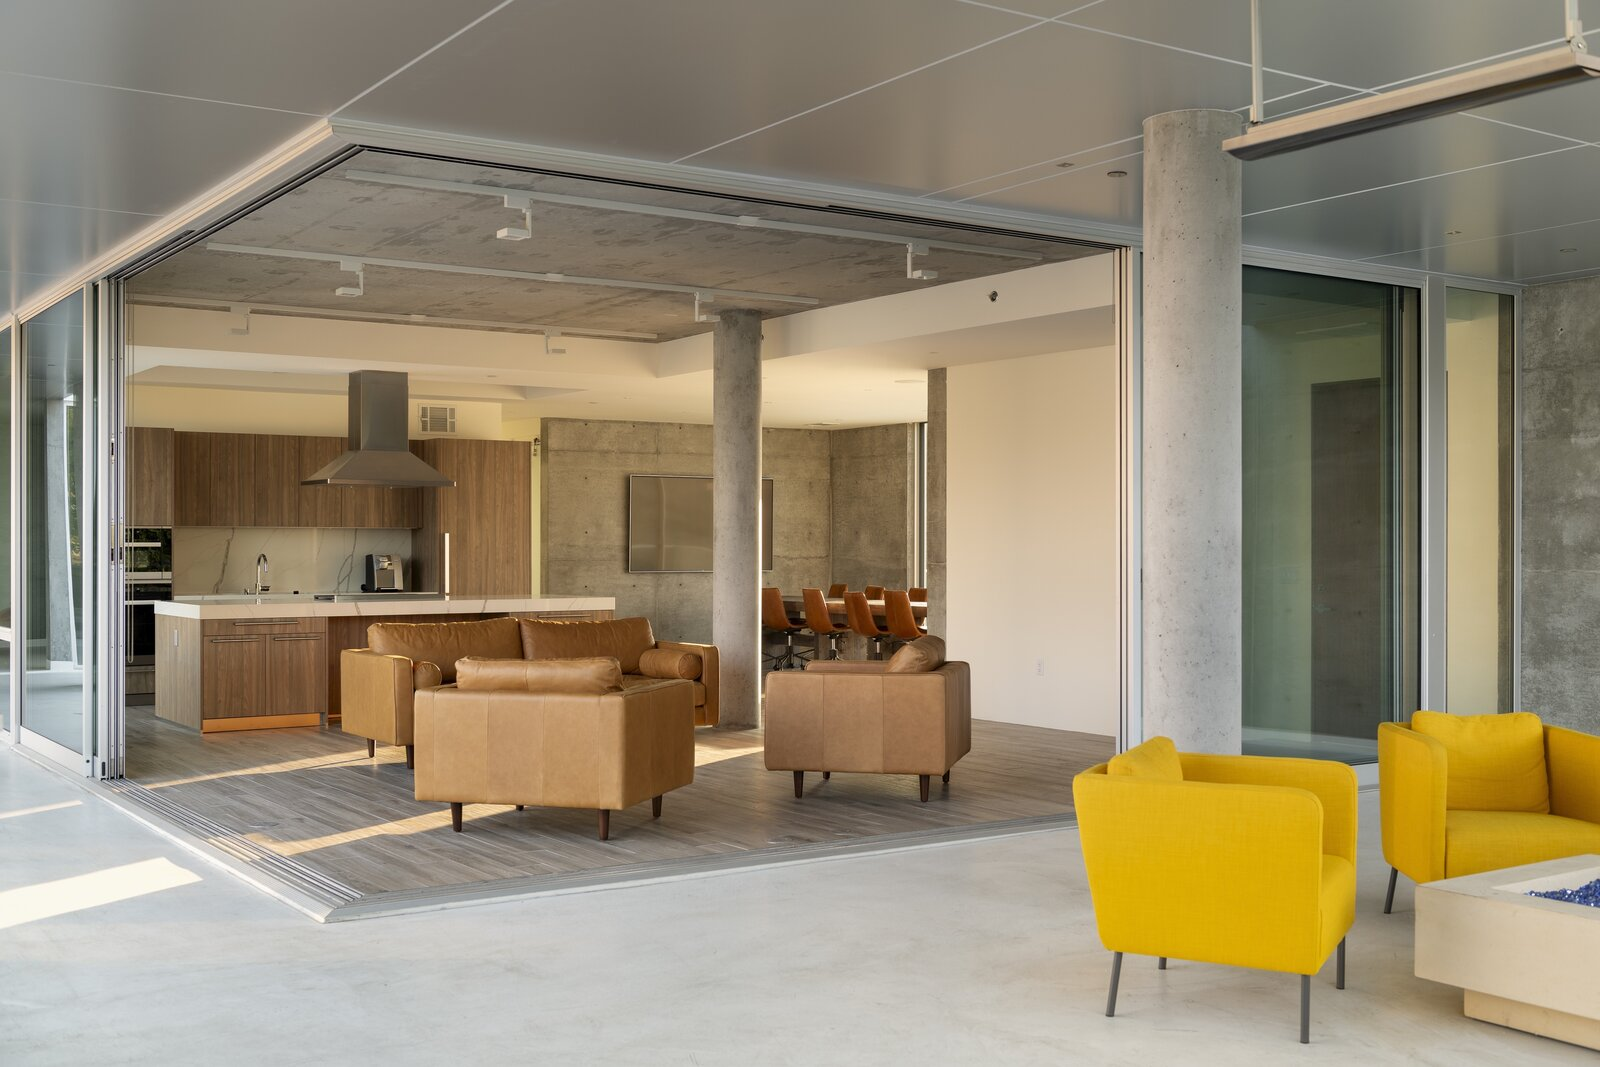 Photo 1 of 7 in A Net-Zero Building in Silicon Valley Gracefully Encompasses Both Work and Play